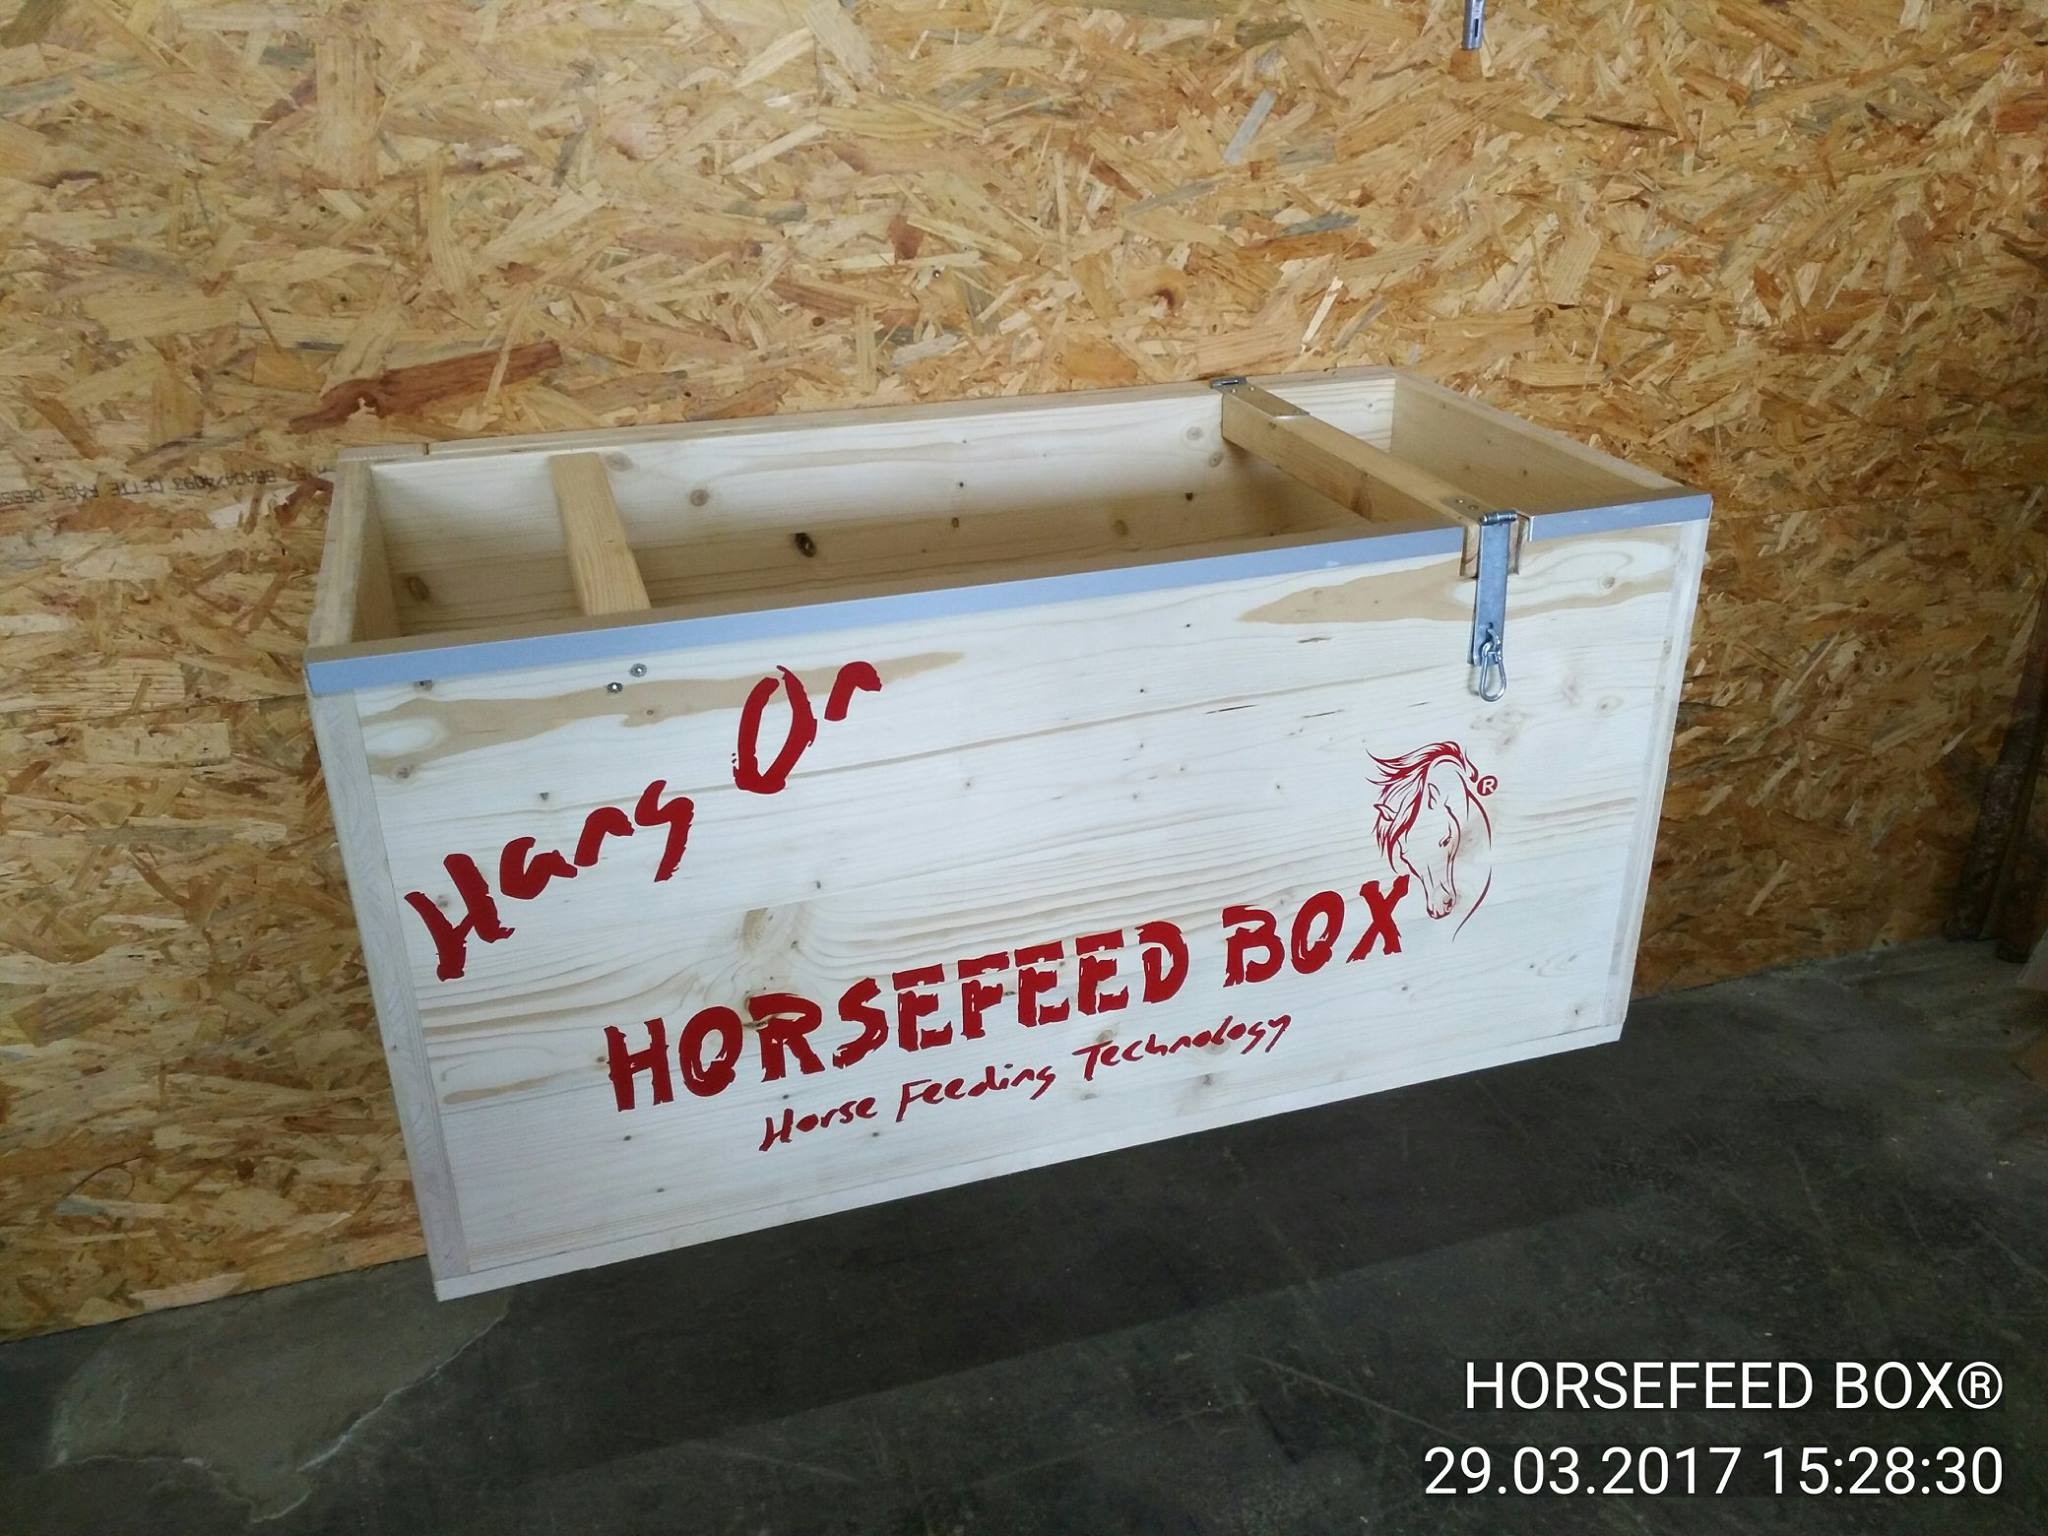 HORSEFEED BOX® - HANG ON CLASSIC